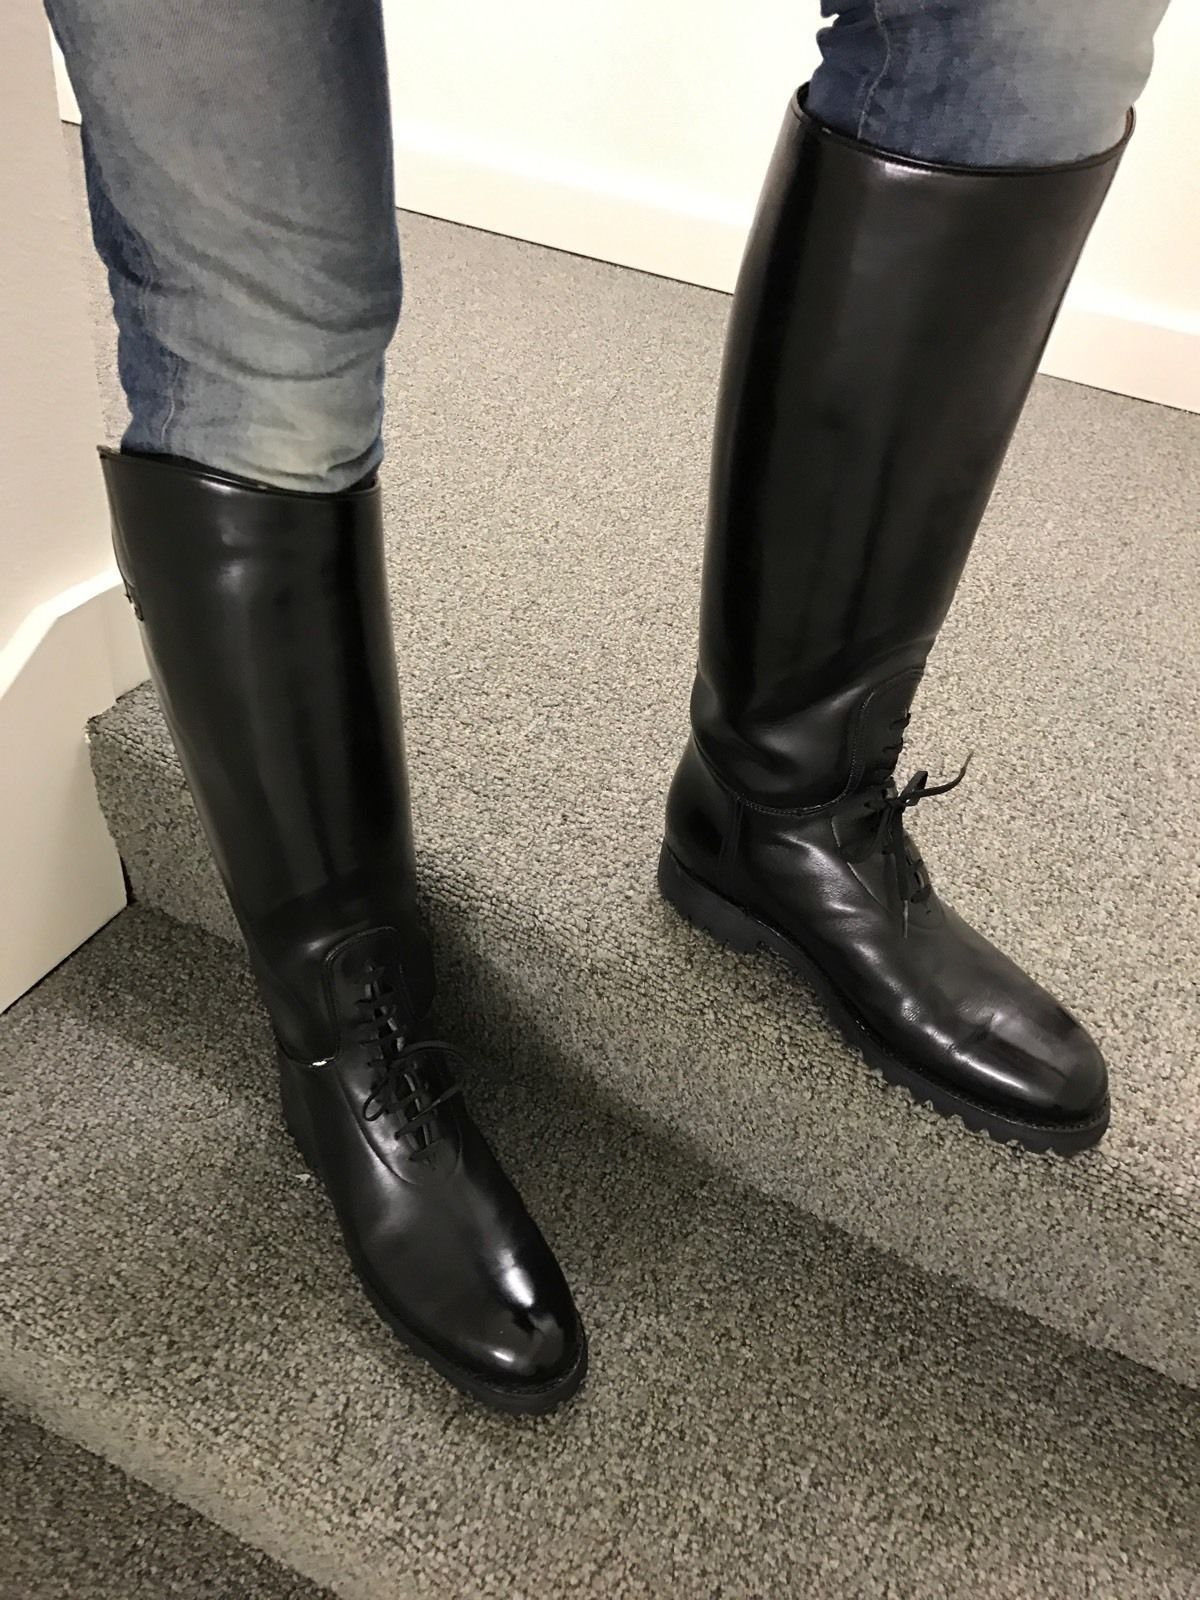 Dehner Shop Dehner Motorcycle High Shine Patrol Bal Laced Cop Boots Used